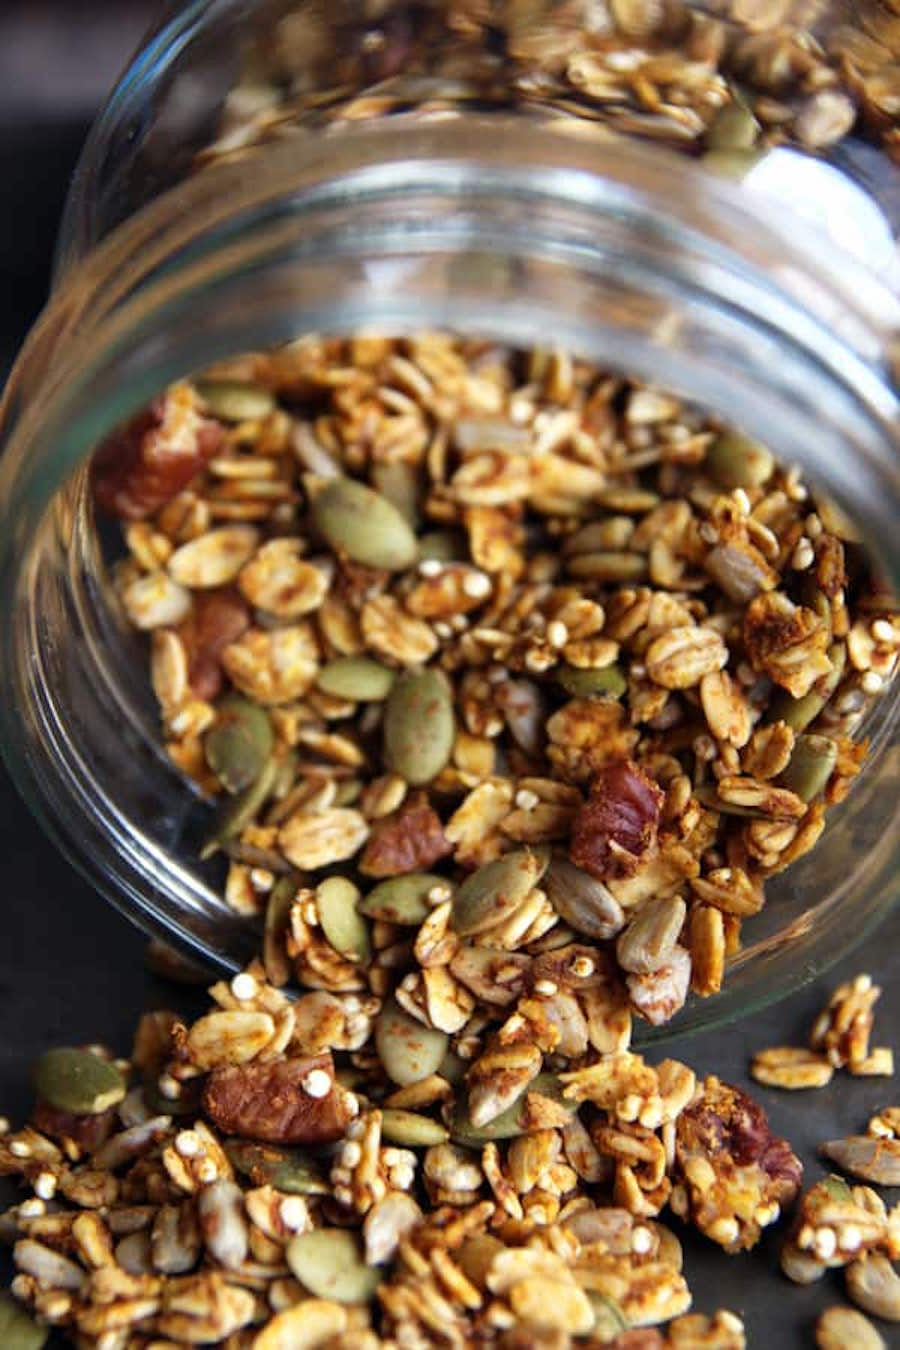 STYLECASTER | Pumpkin Seed Recipes